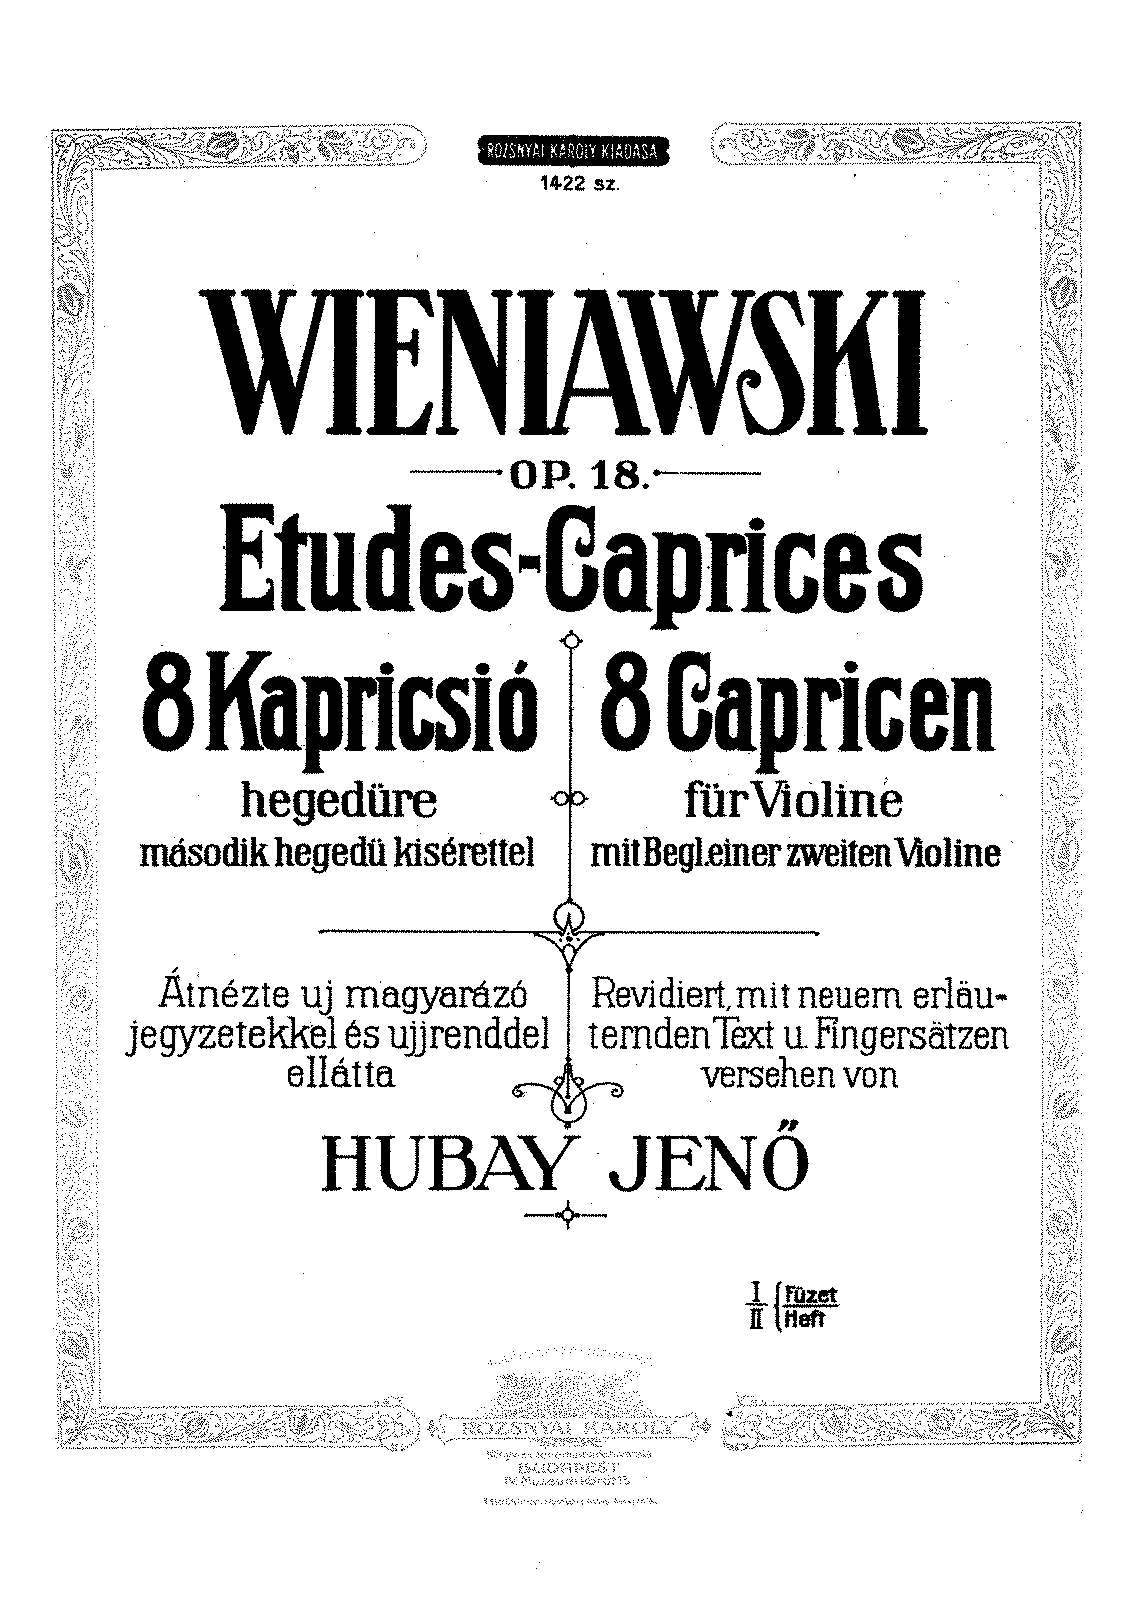 PMLP29217-Wieniawski - 8 Caprices Op18 for 2 violins Part1.pdf